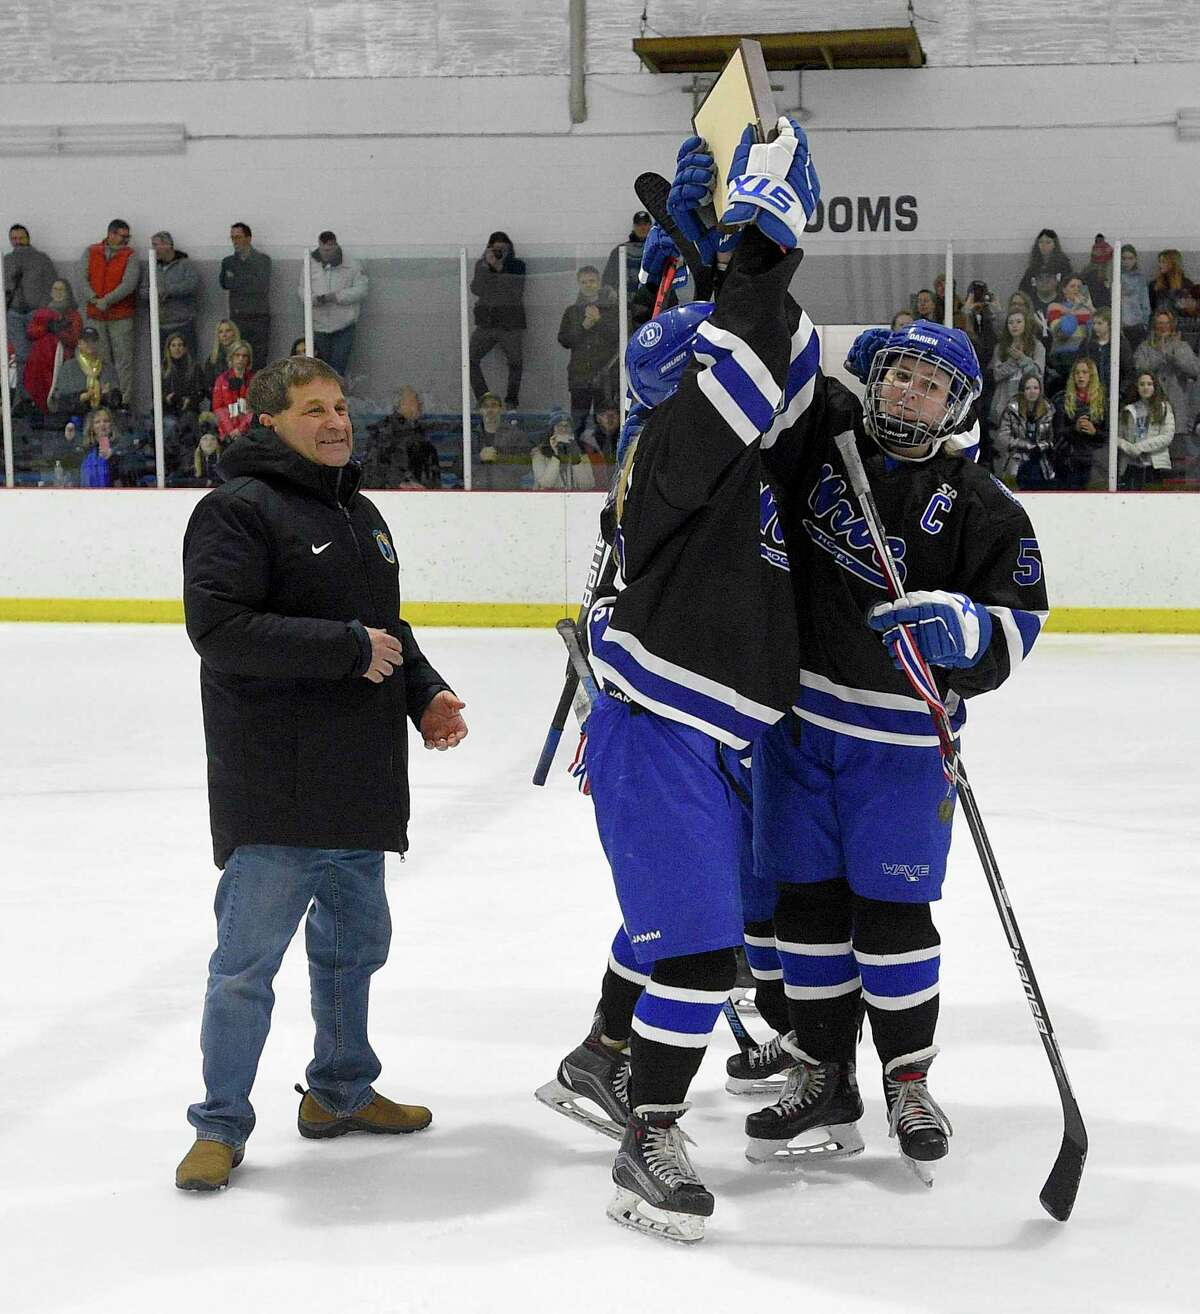 Darien team captains celebrate after accepting the championship plaque after defeating New Canaan 4-2 in the FCIAC Girls' Ice Hockey finals at the Darien Ice House in Darien, Conn., Saturday, Feb. 29, 2020.